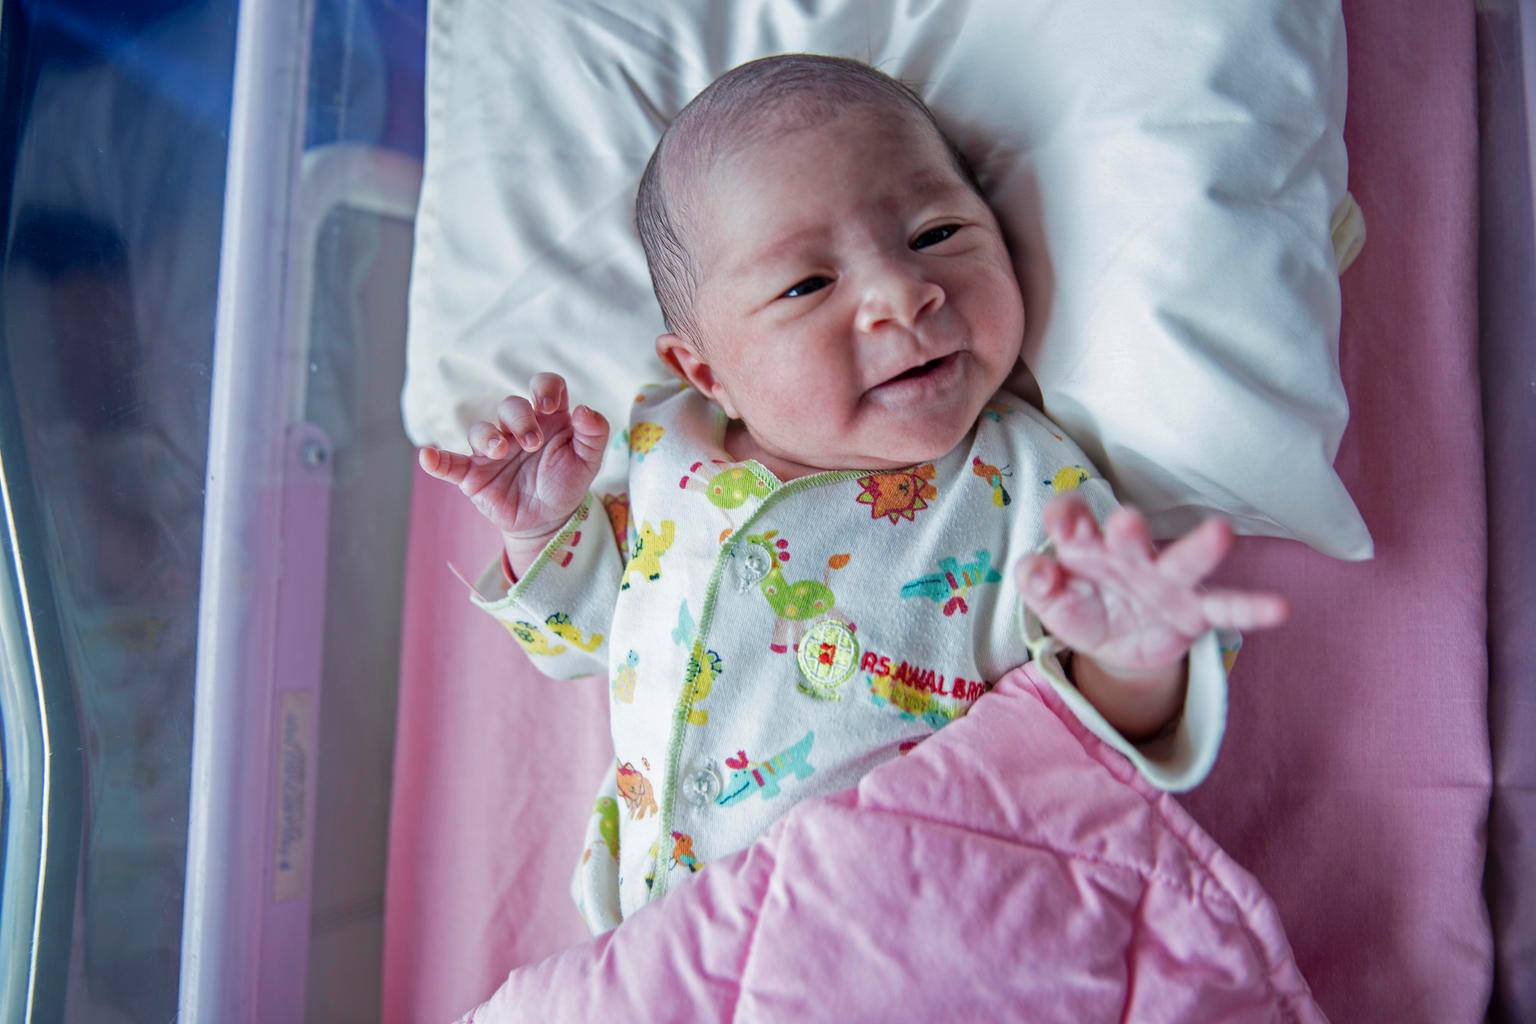 Indonesian Baby Born on Jan. 1, 2019